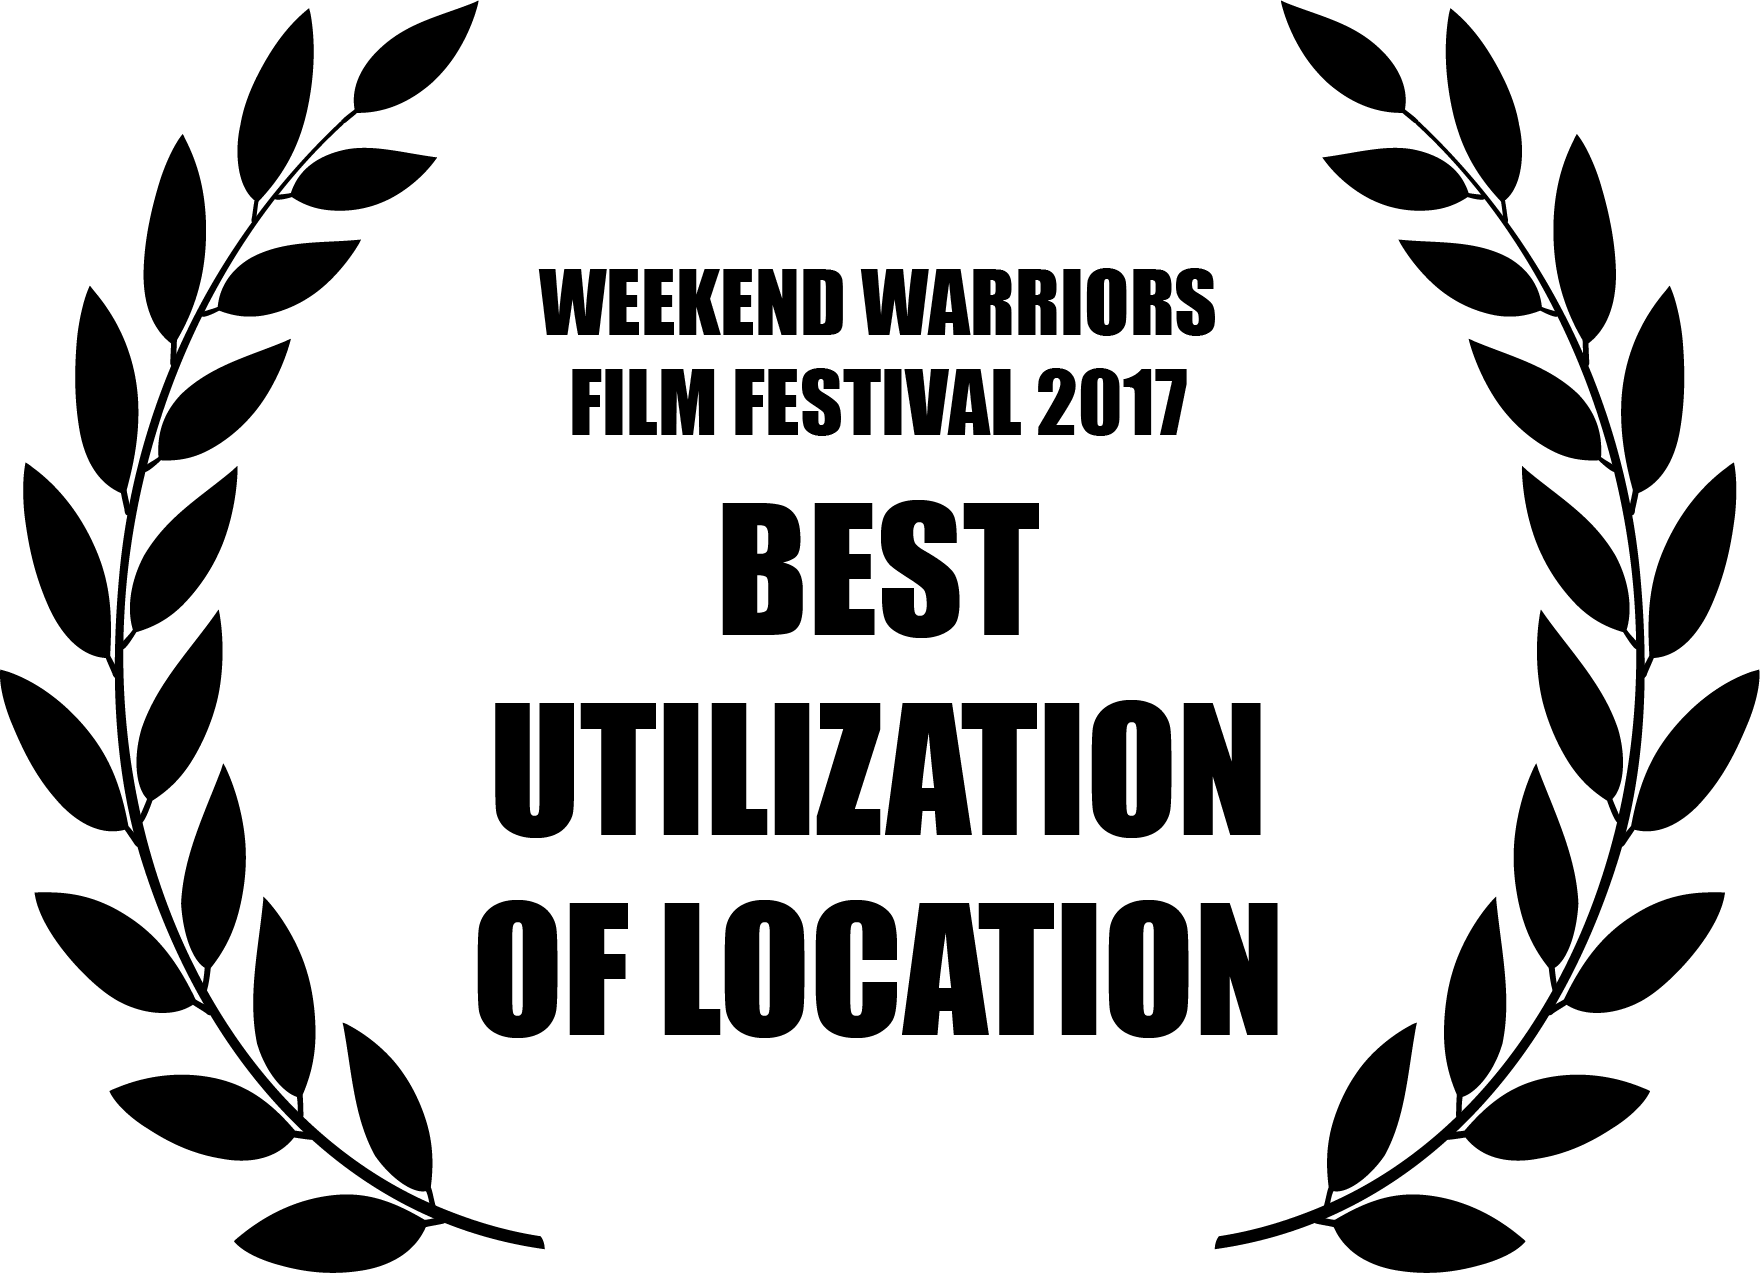 wwff_location.png